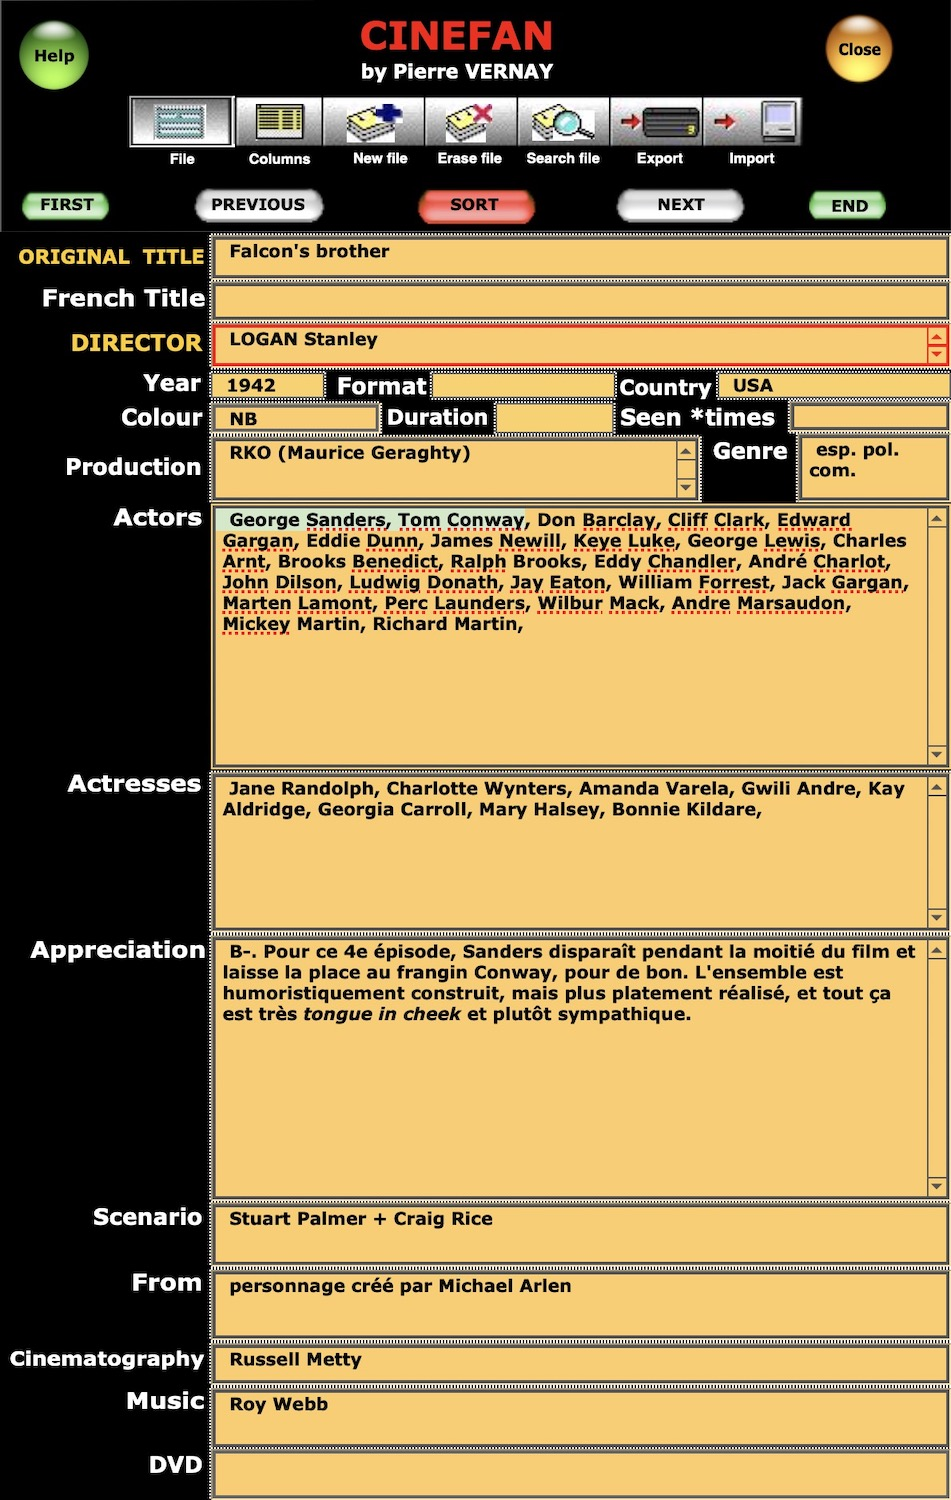 movie database,internet movie database,international movie database